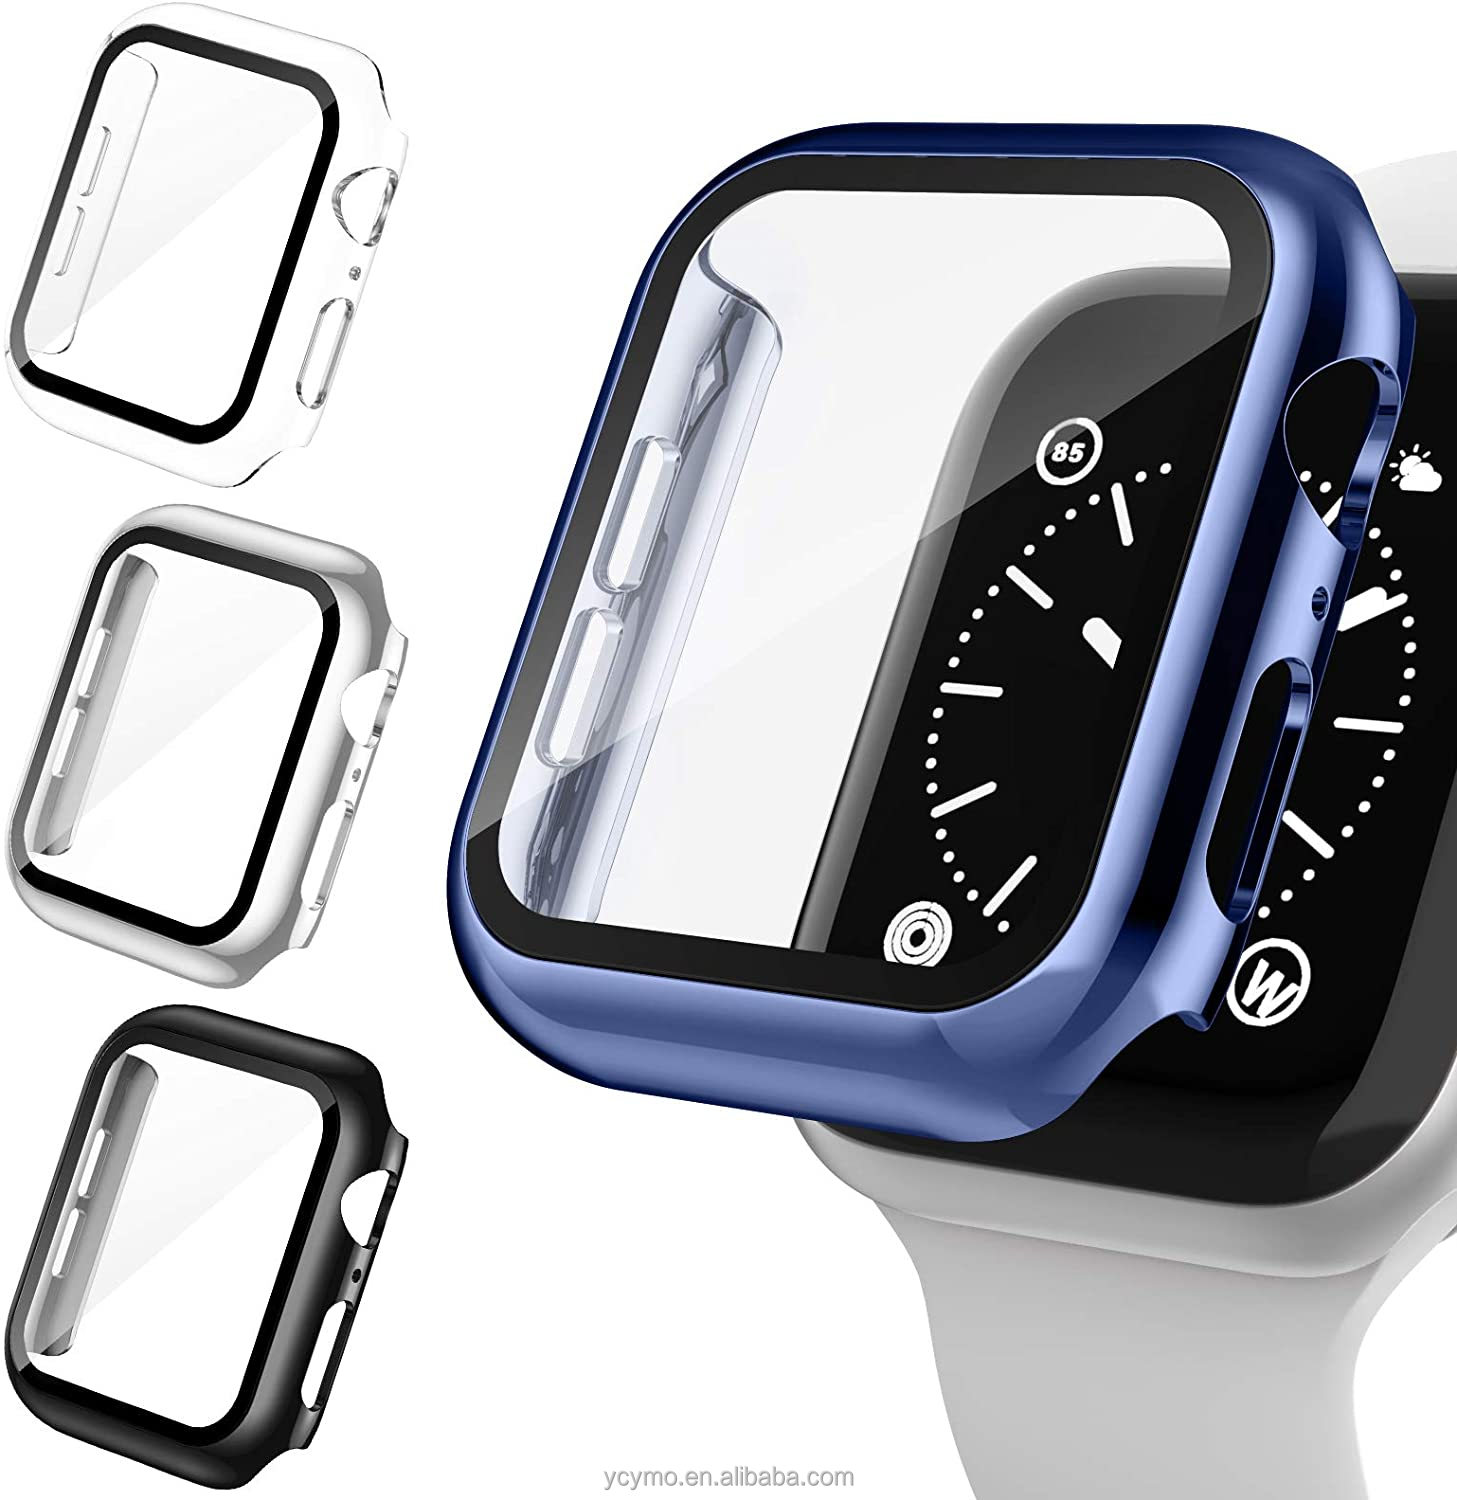 YCYMO Case With Screen Protector For Apple Watch Case Covers For I-watch Case Series 6/5/4/3 SE